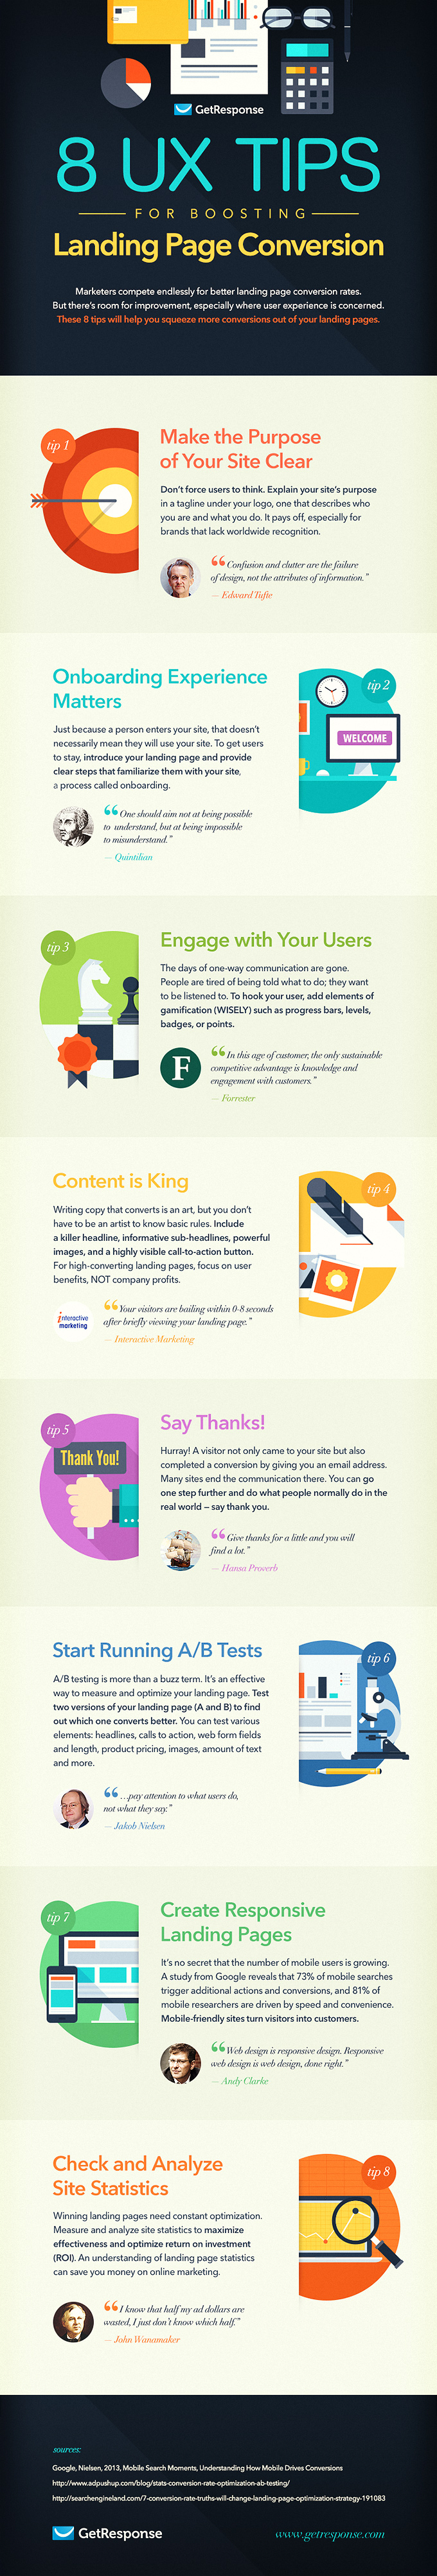 Infographic: how to Improve landing page conversion